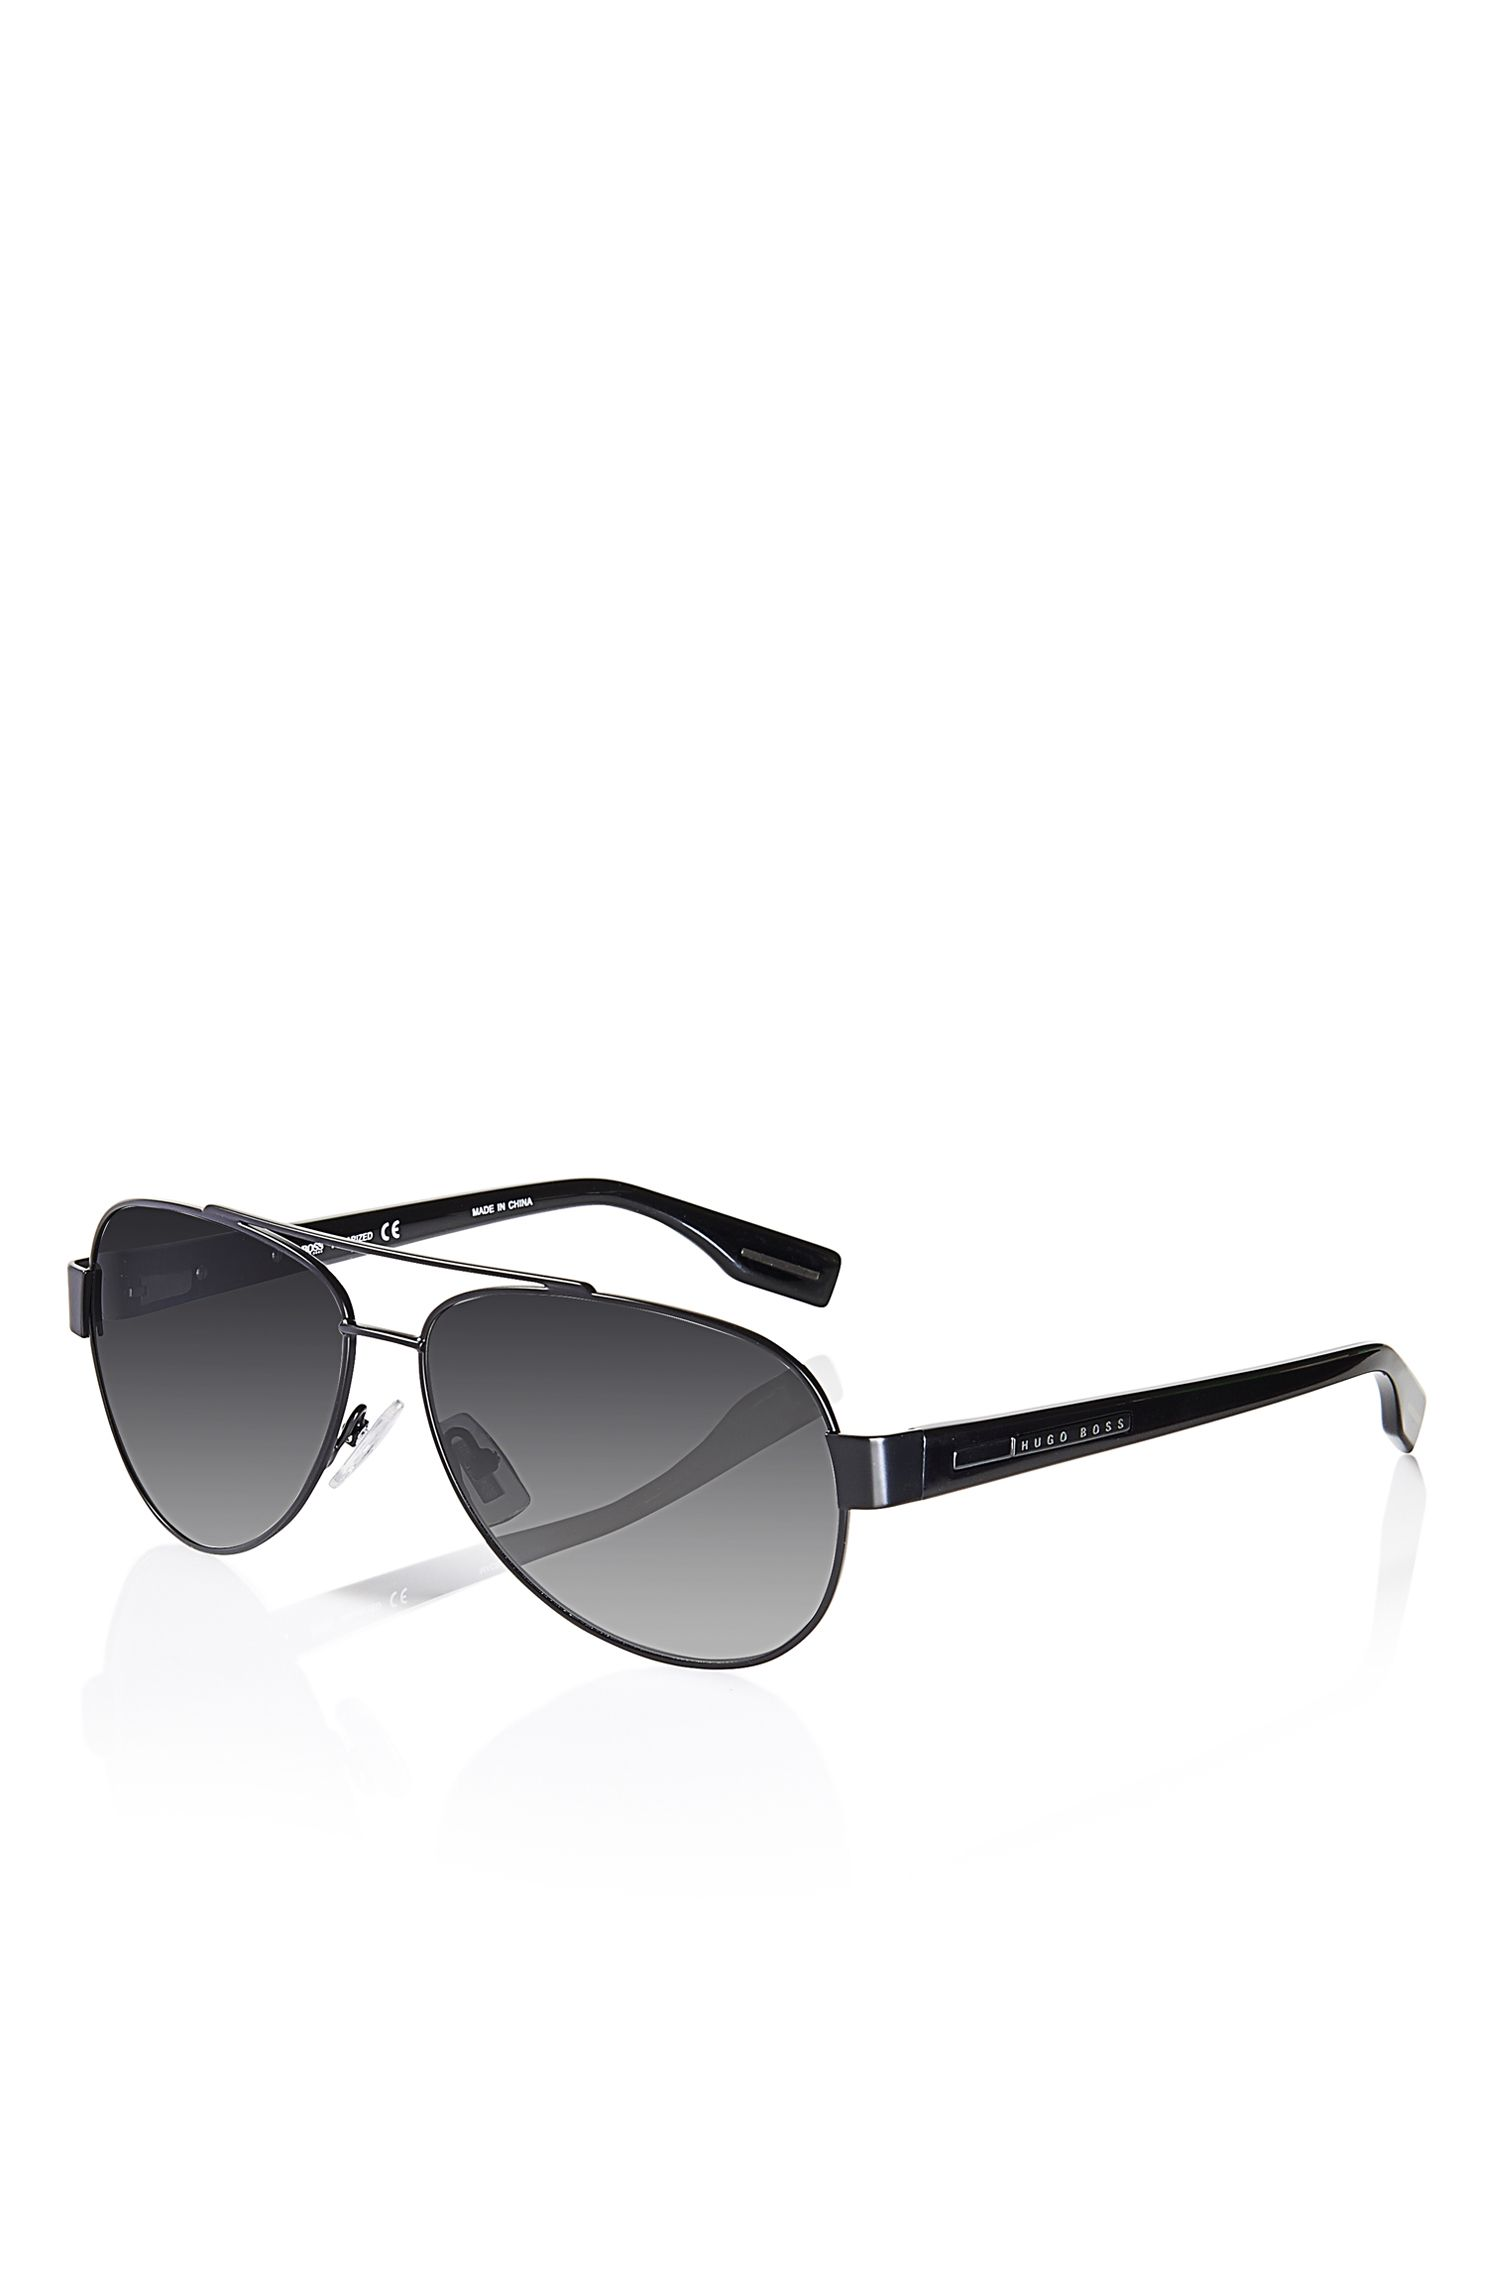 'Sunglasses' | Matte Black Metal Aviator Sunglasses